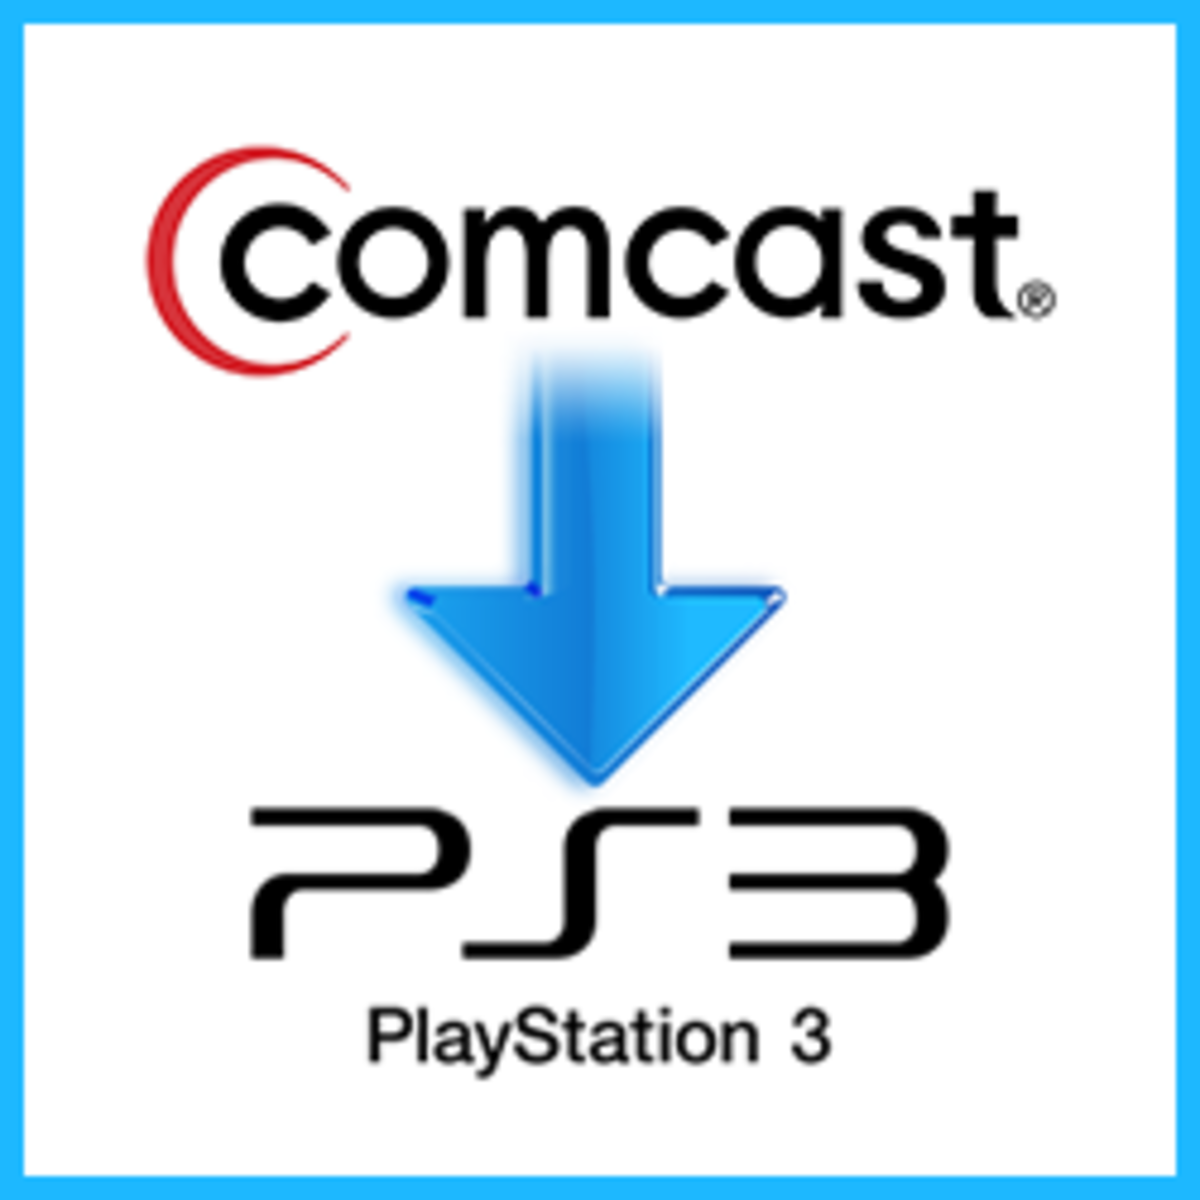 How to Connect Your PS3 to Comcast WiFi